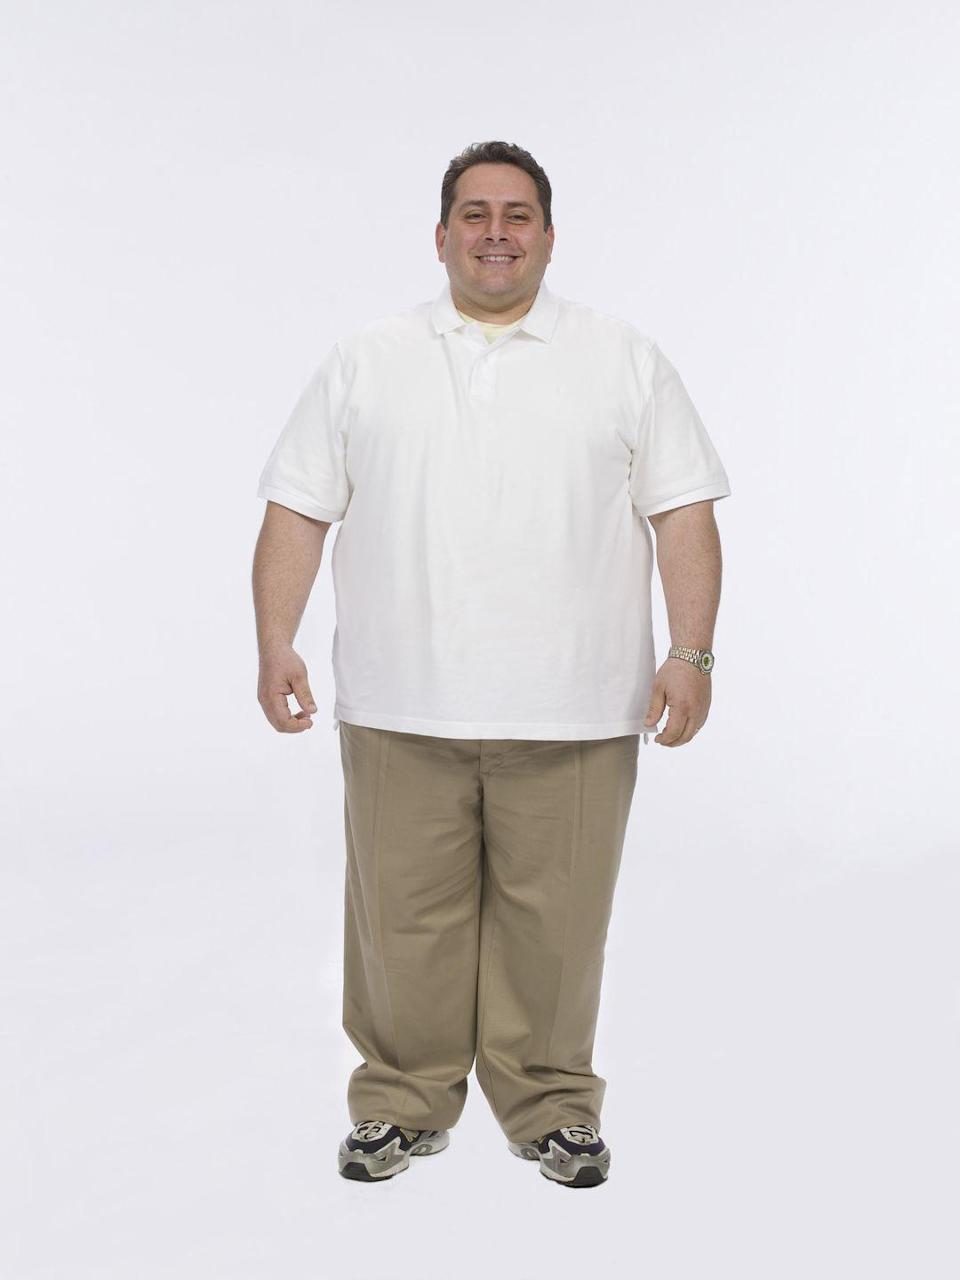 """<p>Bill started the show at 334 pounds and competed alongside his twin brother, Jim. At the start, <a href=""""https://people.com/tv/bill-germanakos-is-the-biggest-loser/"""" rel=""""nofollow noopener"""" target=""""_blank"""" data-ylk=""""slk:he admitted"""" class=""""link rapid-noclick-resp"""">he admitted</a> that he had a """"body built by baklava."""" Steady weight loss, combined with a serious dose of grit, eventually helped him win season four.</p>"""